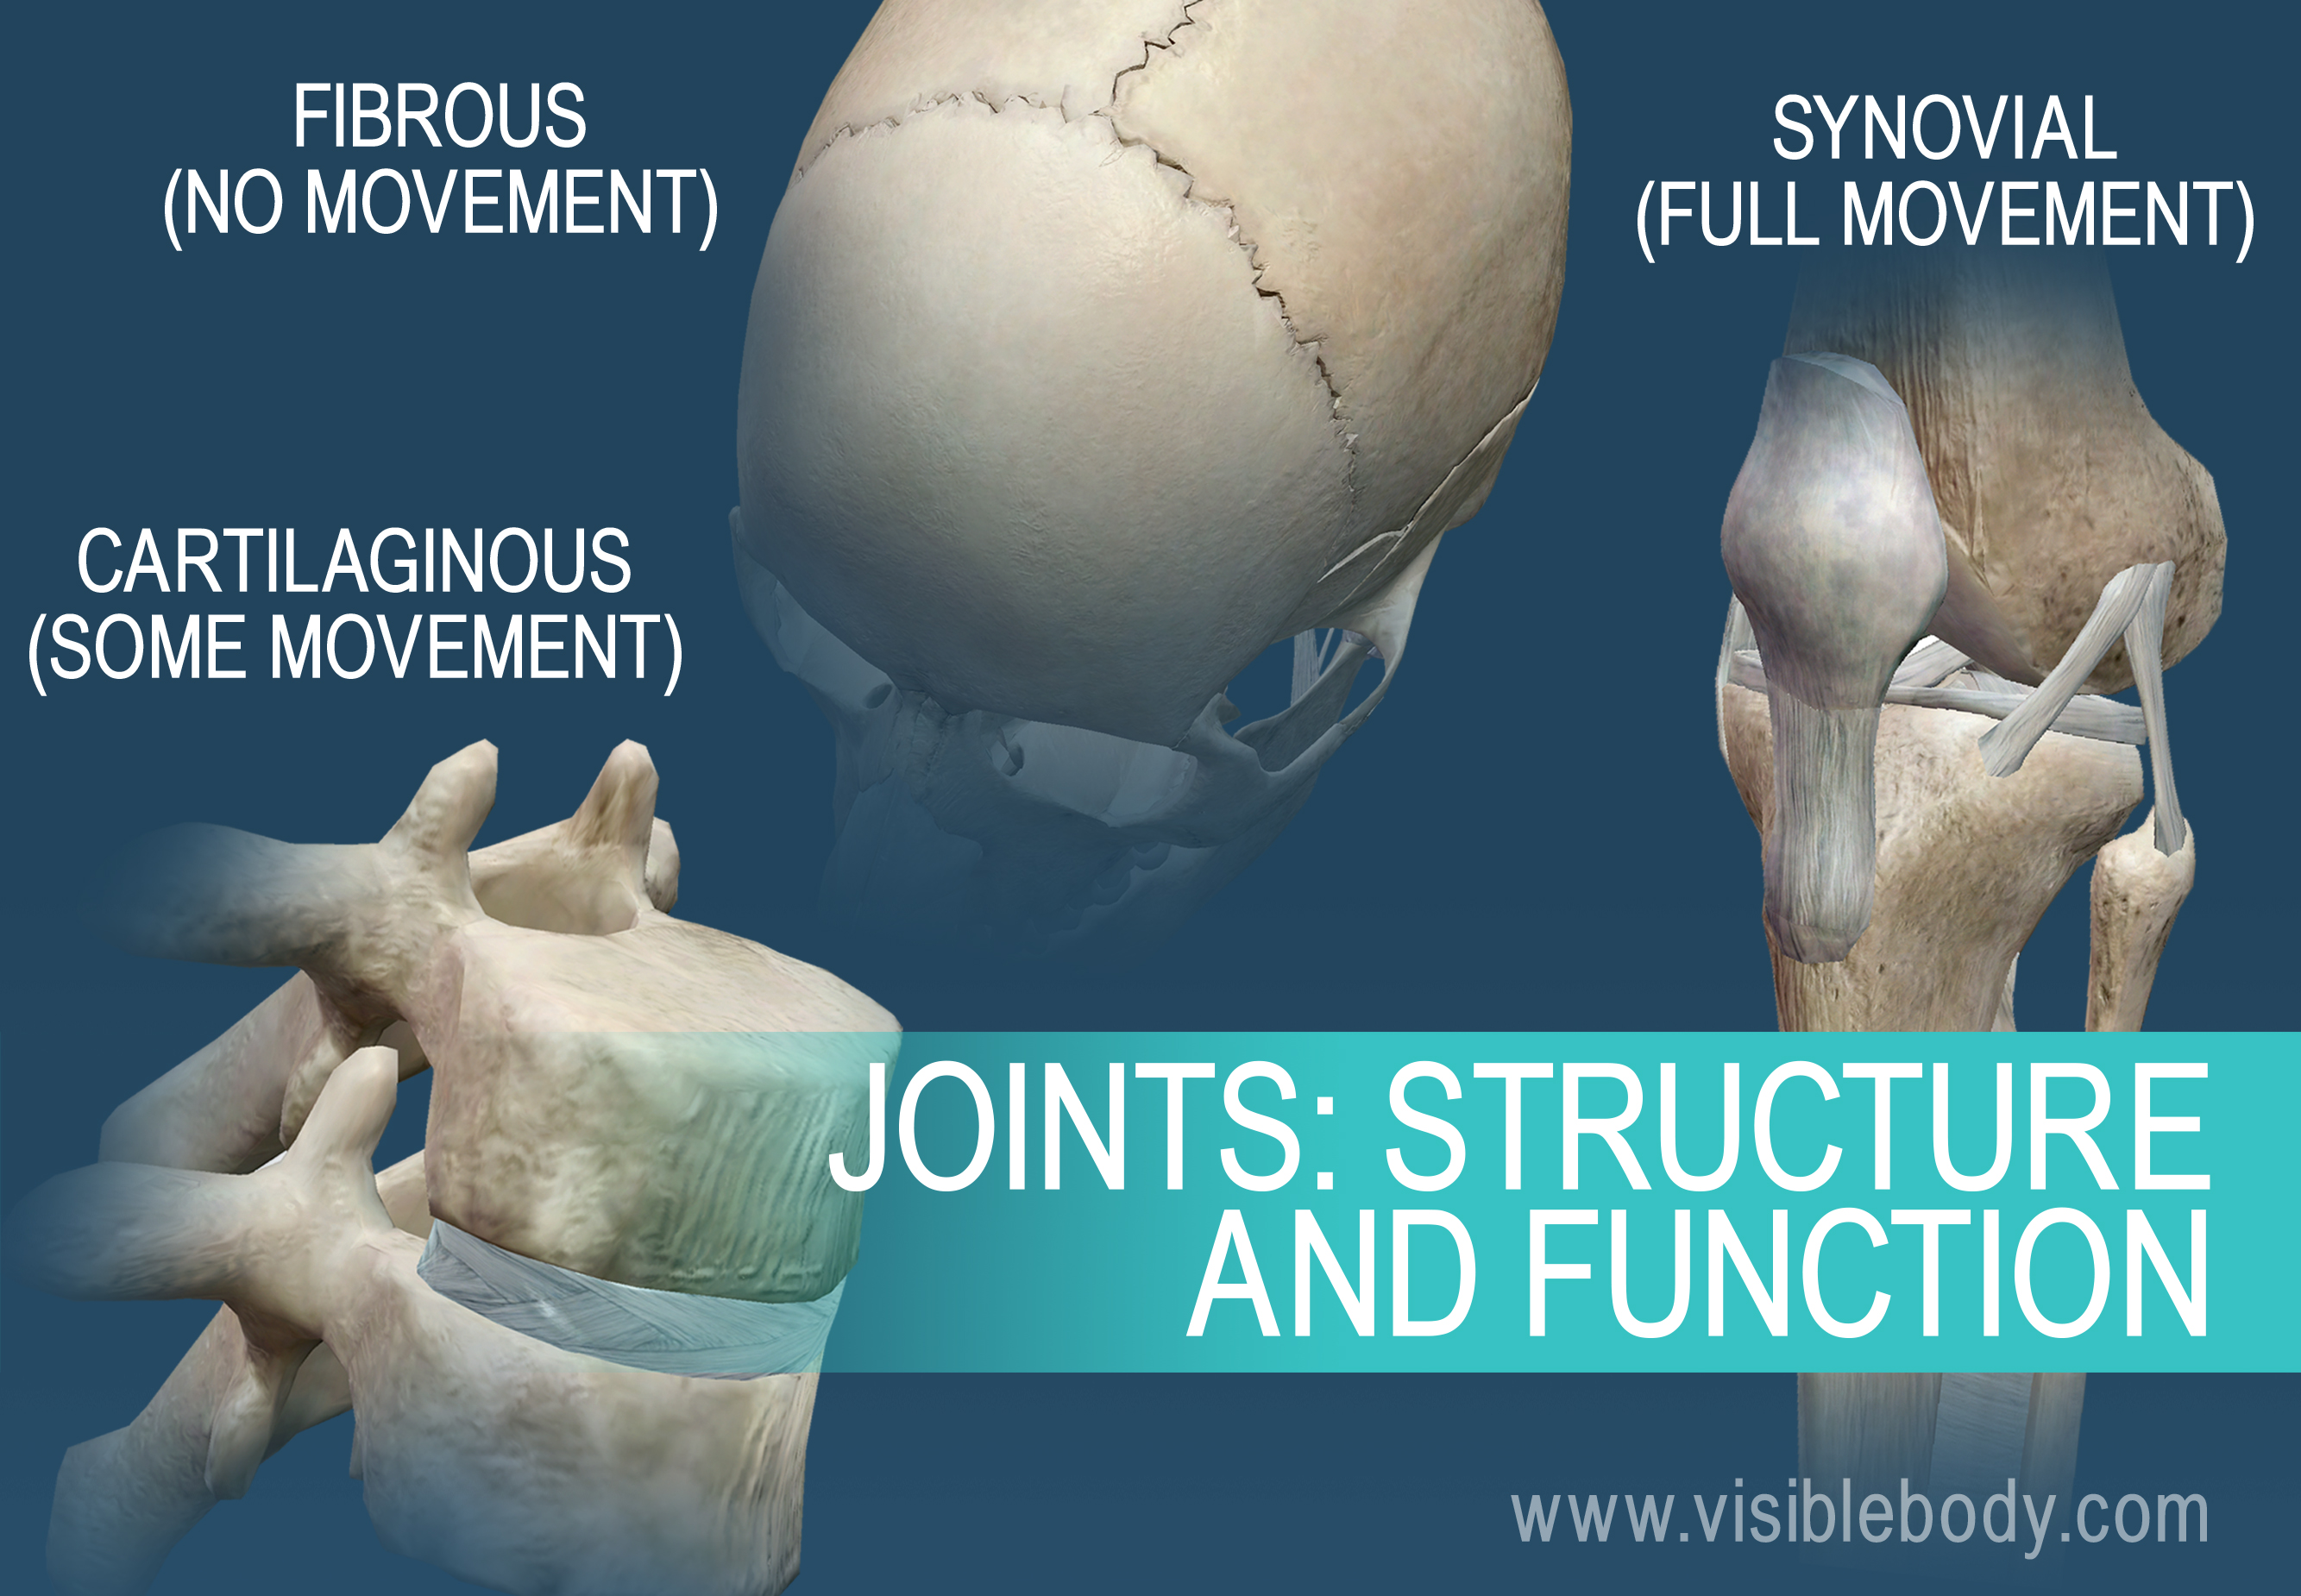 Joints can be named for their motion type, or their composition